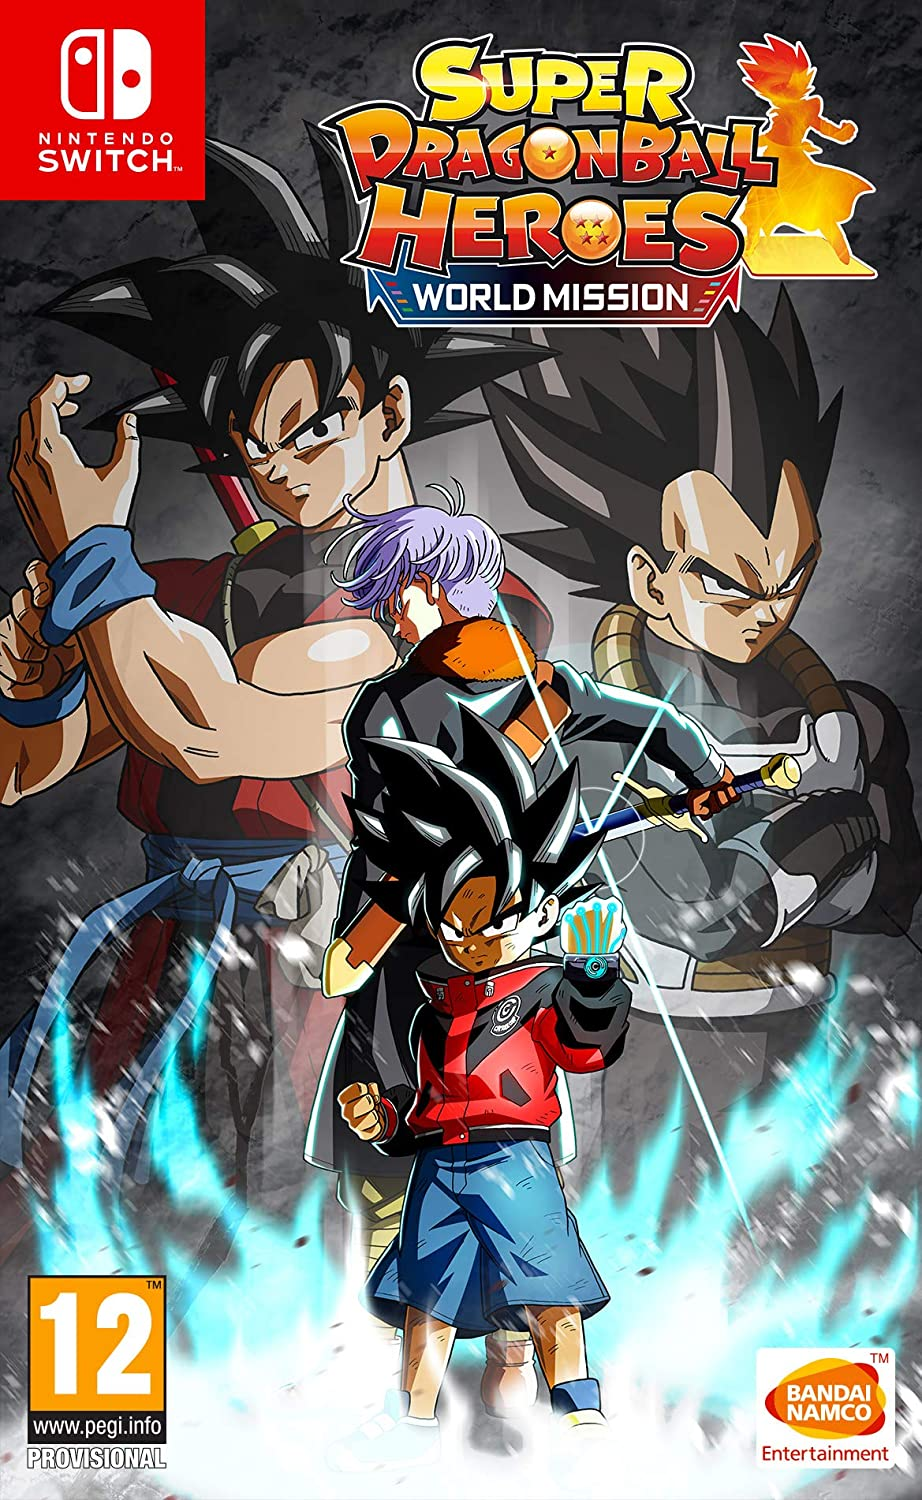 Super Dragon Ball Heroes [SWITCH] : World Mission | Bandai Namco Entertainment